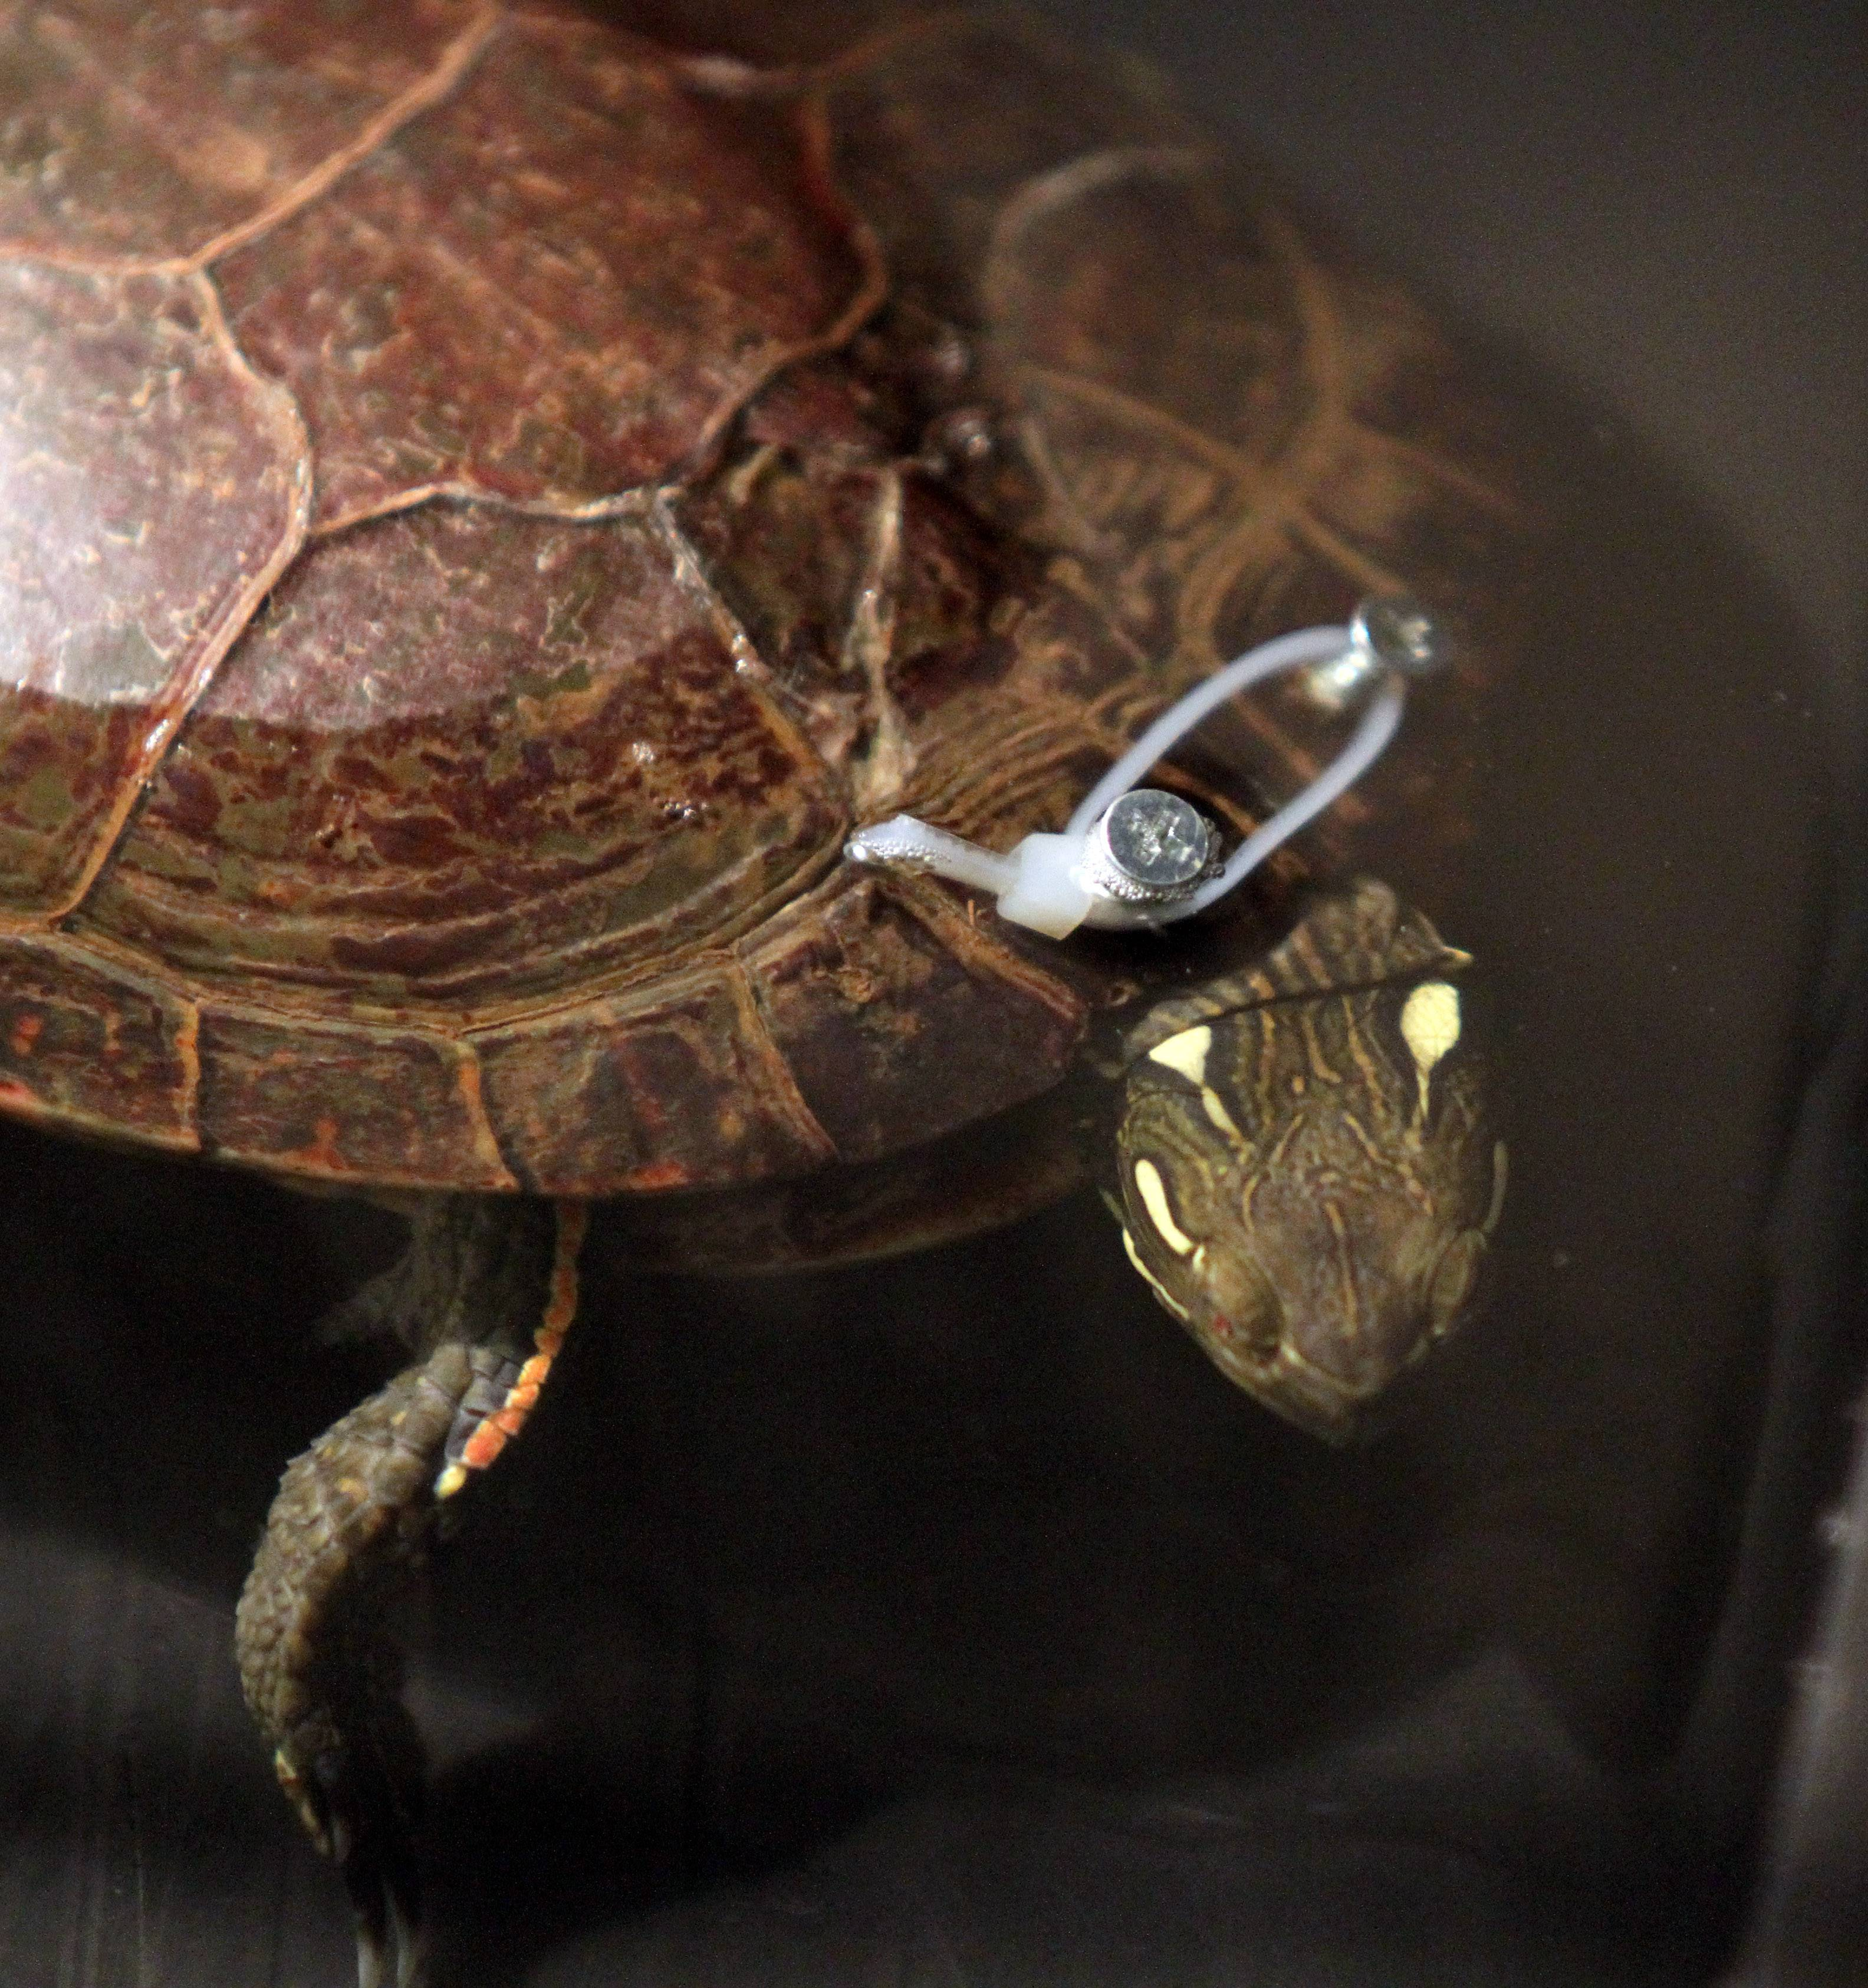 Fast cars make this a tough time for slow turtles